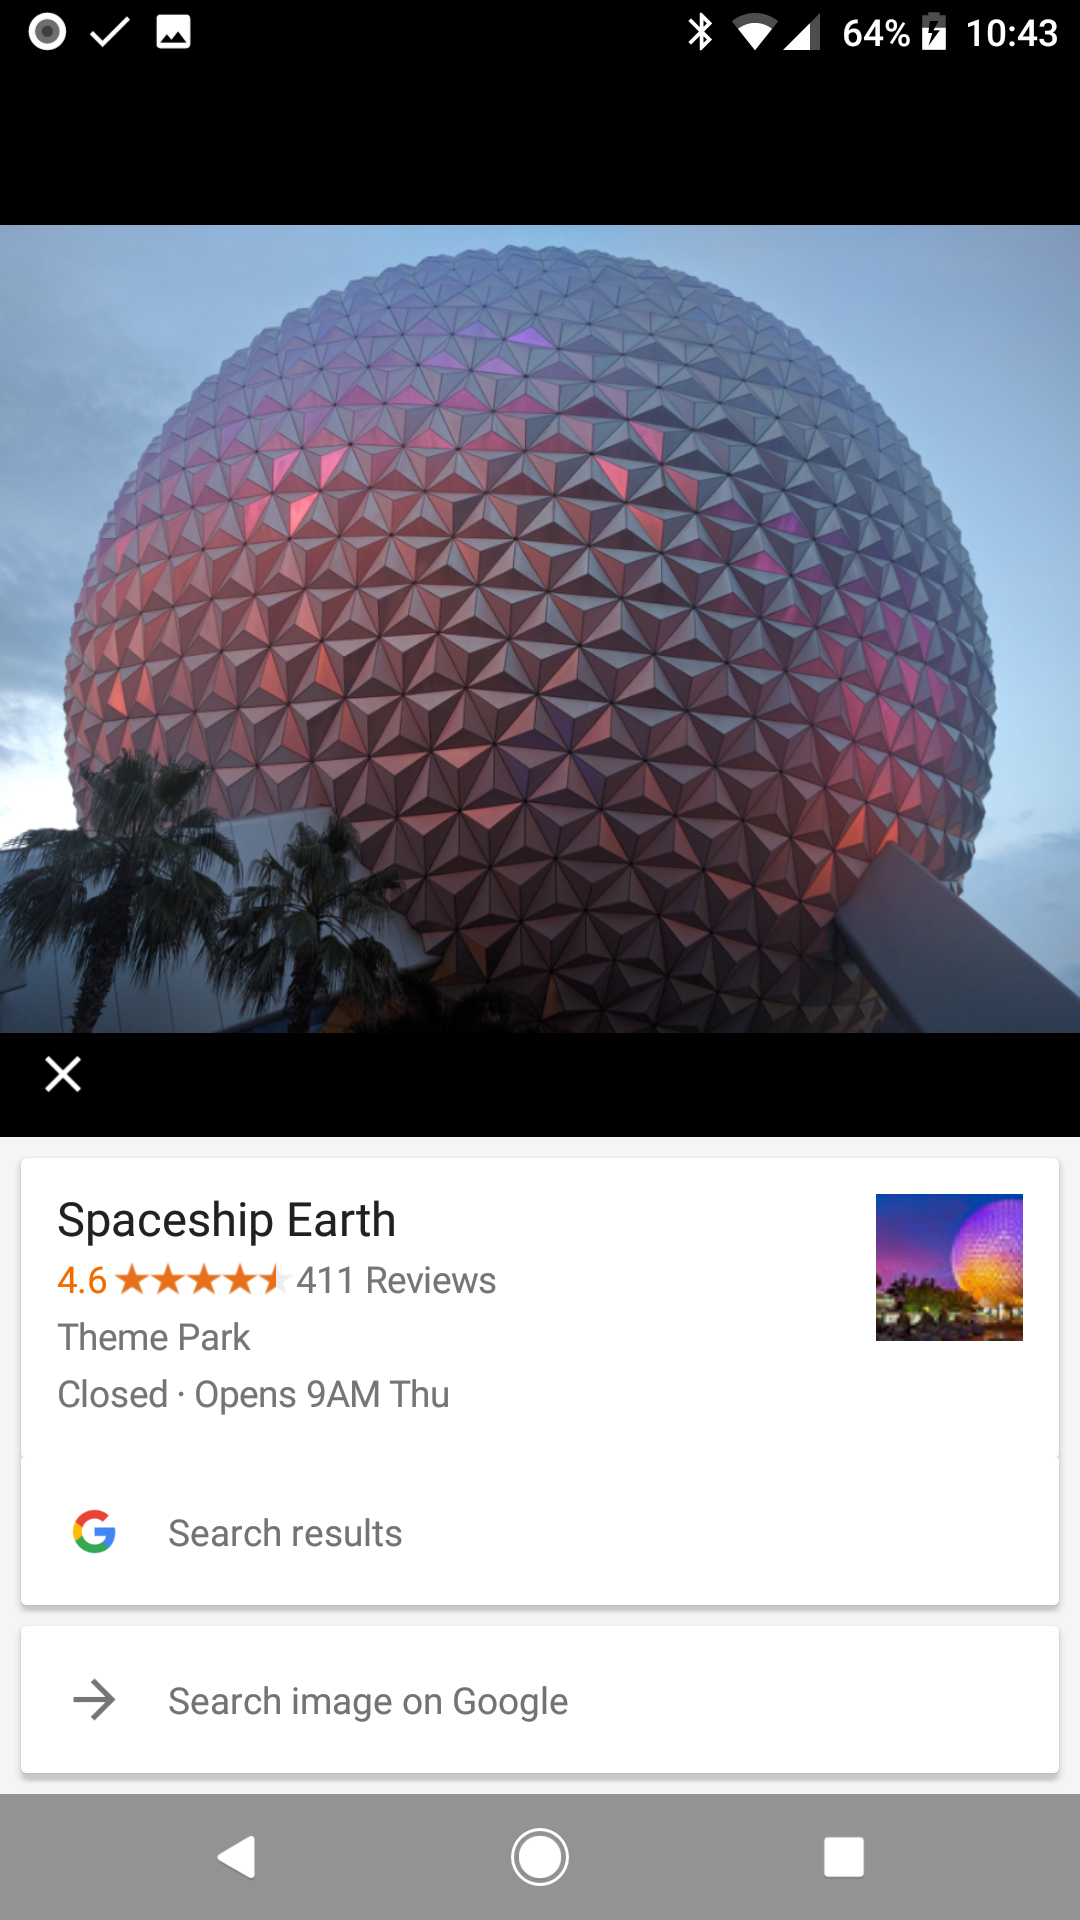 Google Lens nailed the first two